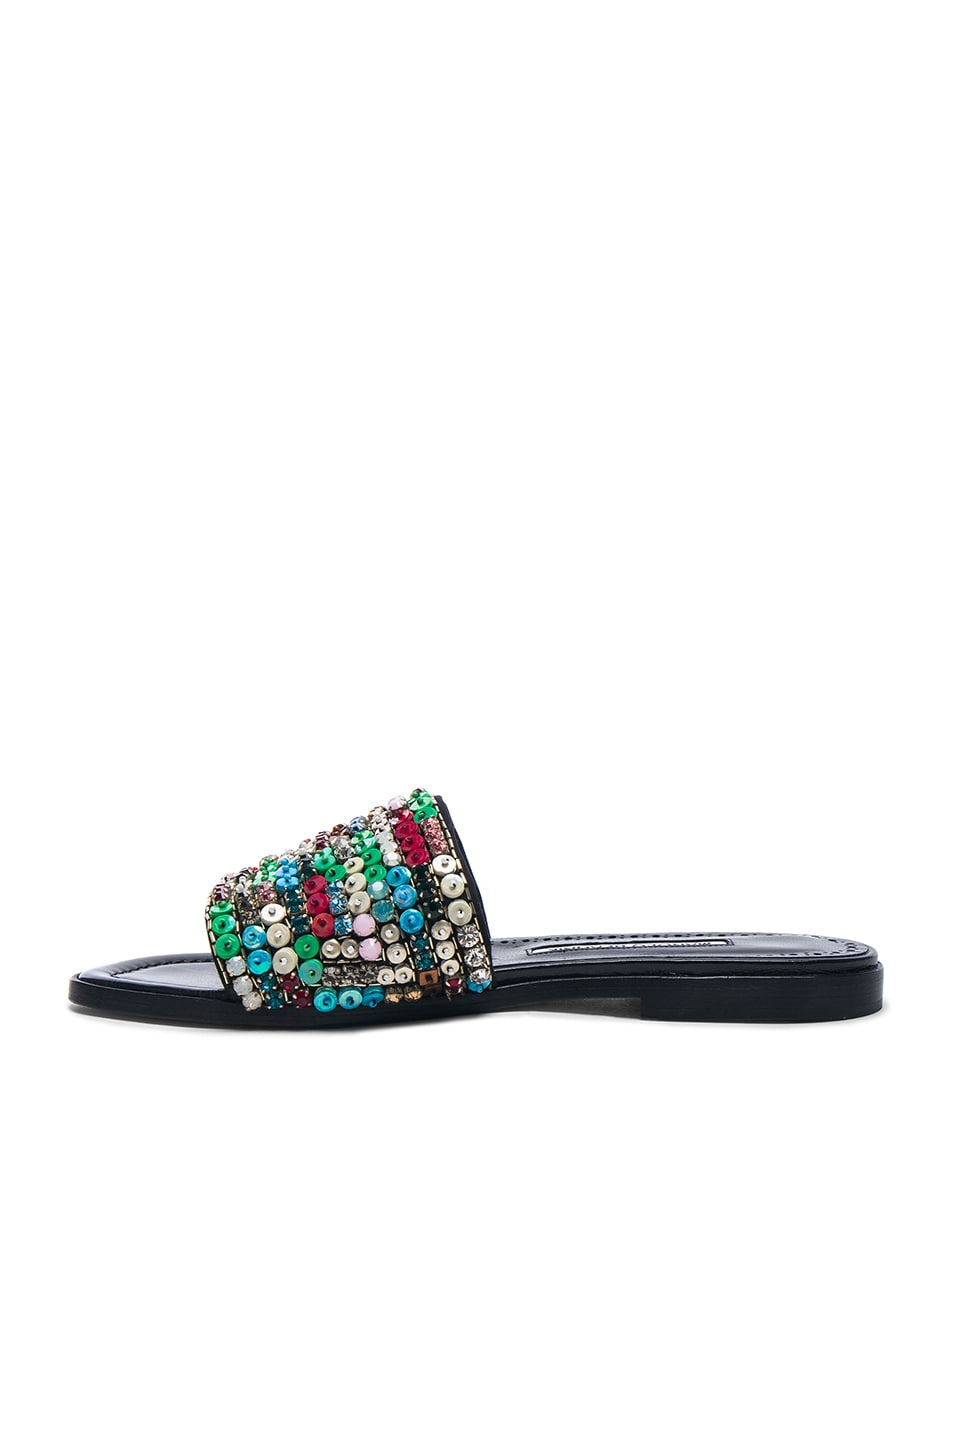 Image 5 of Manolo Blahnik Gioiosa Slide in Black & Multi